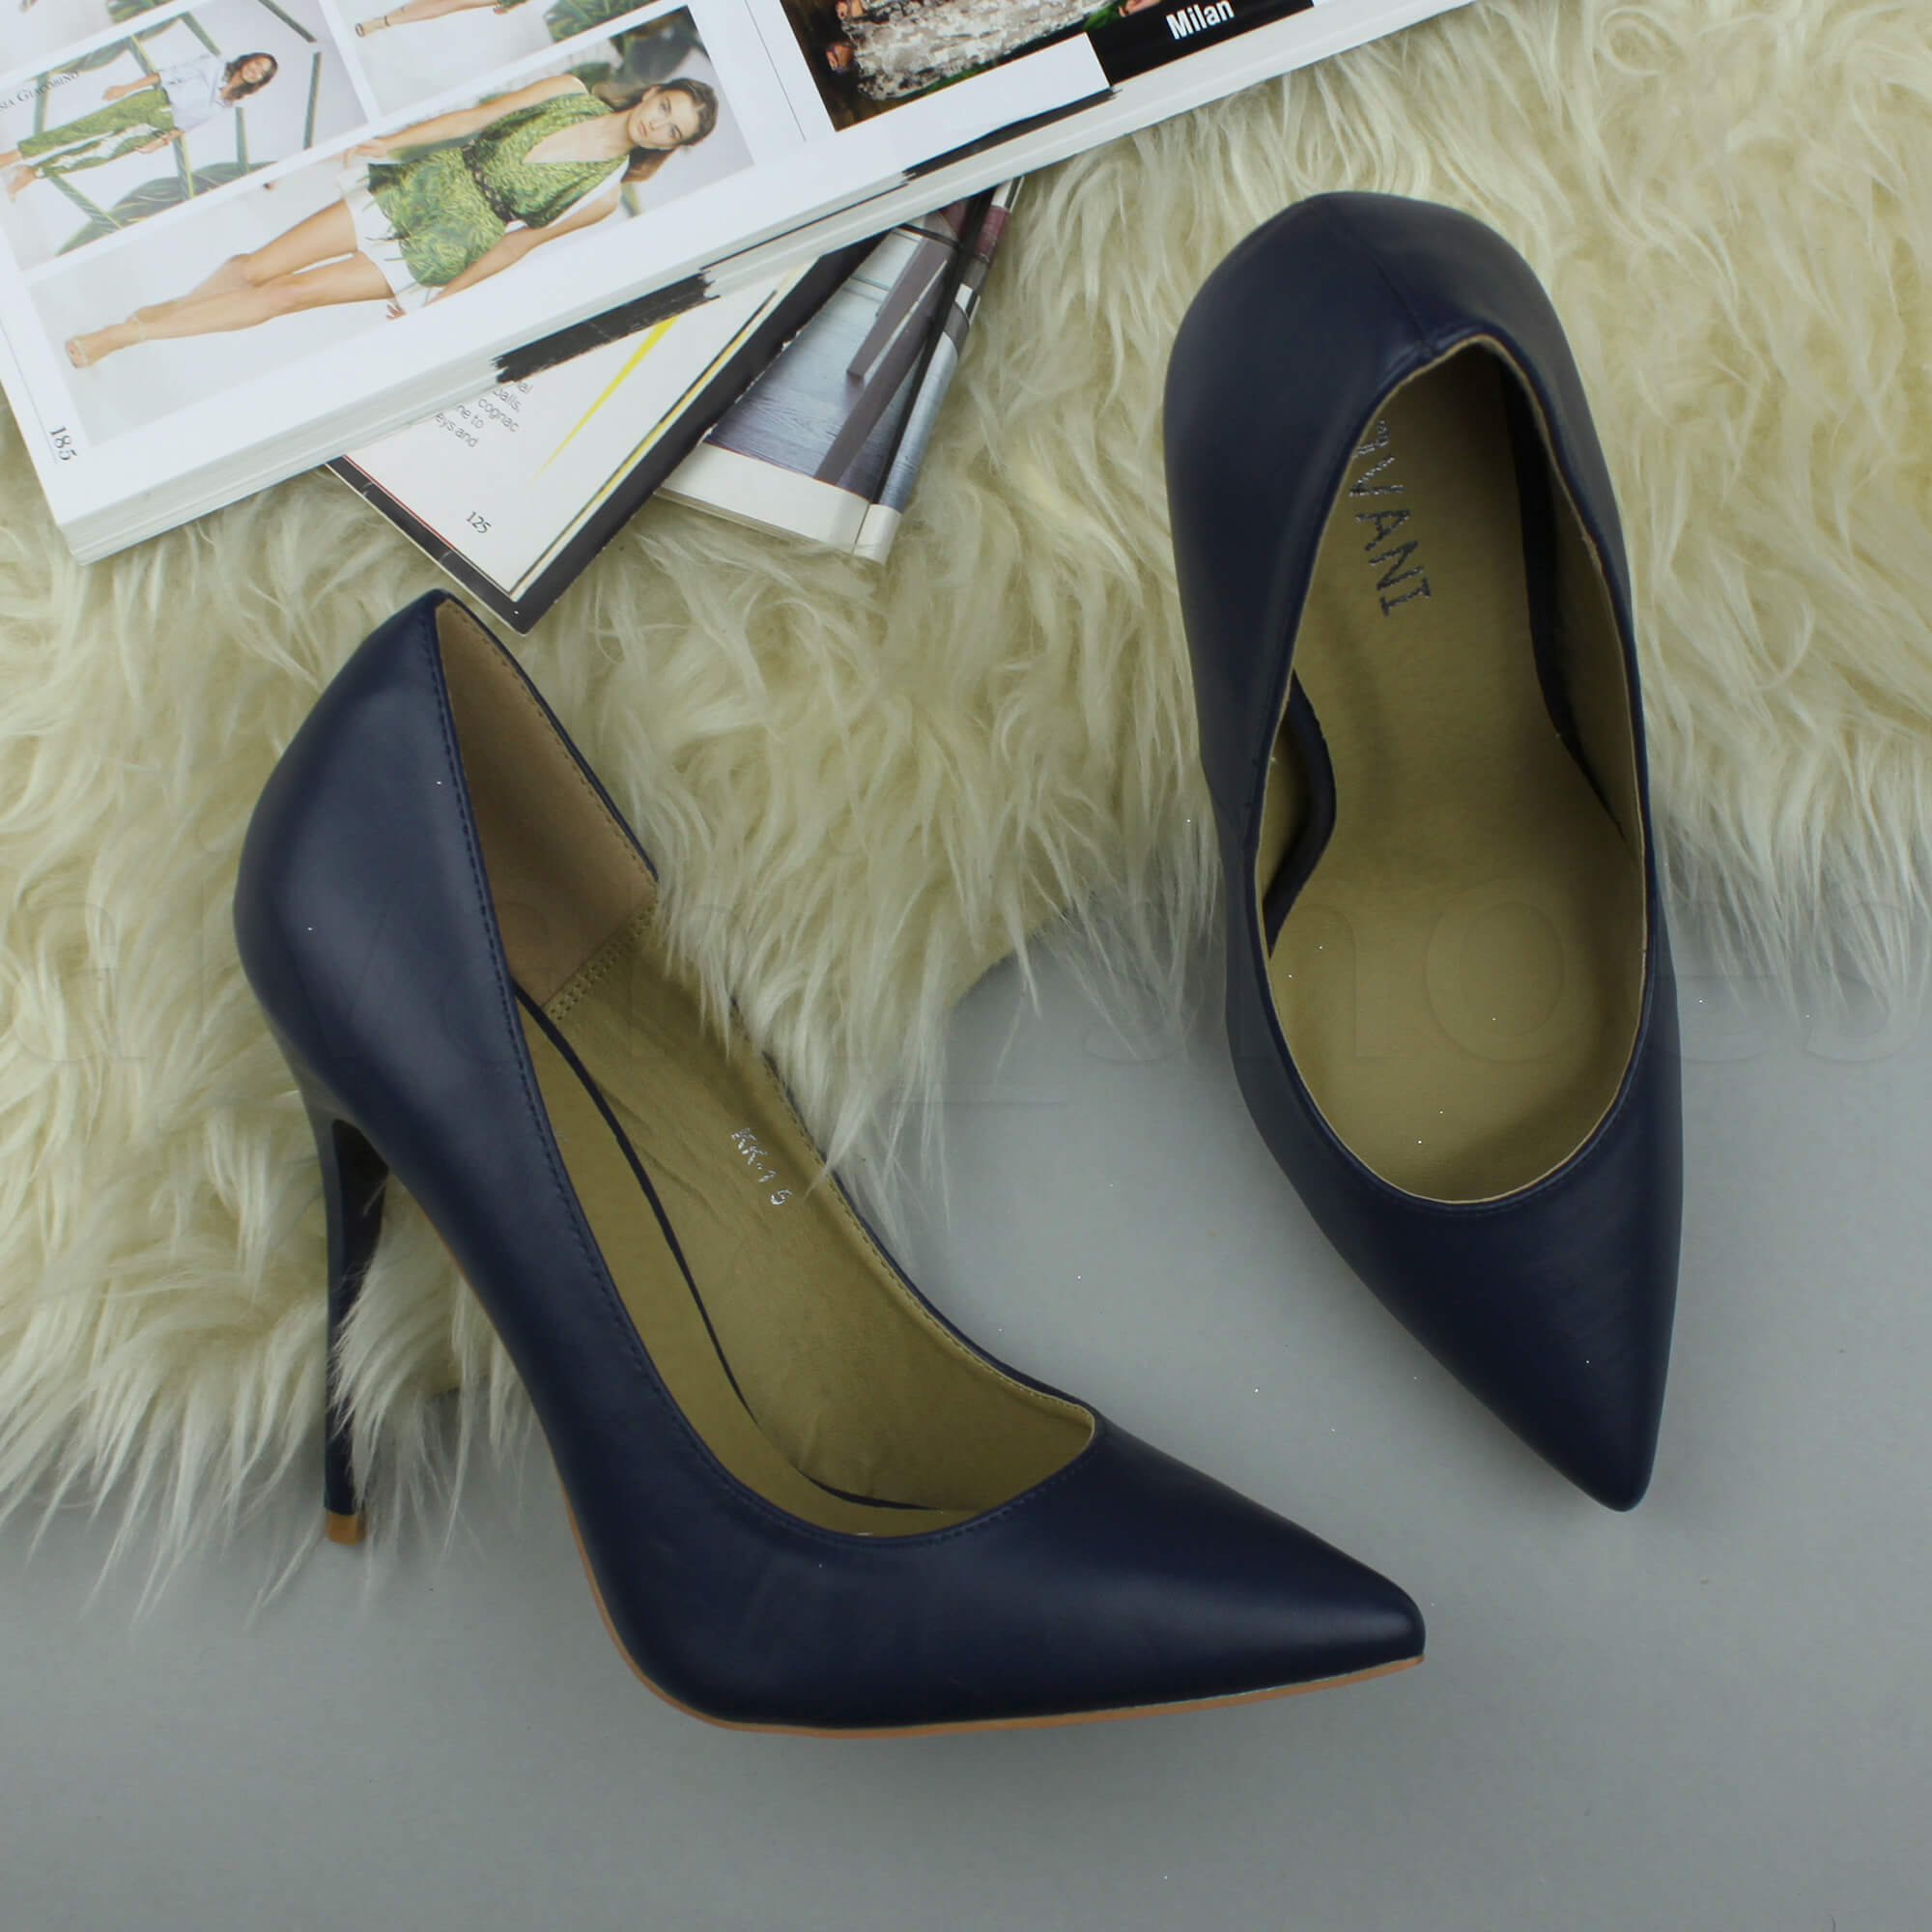 WOMENS-LADIES-HIGH-HEEL-POINTED-CONTRAST-COURT-SMART-PARTY-WORK-SHOES-PUMPS-SIZE thumbnail 91